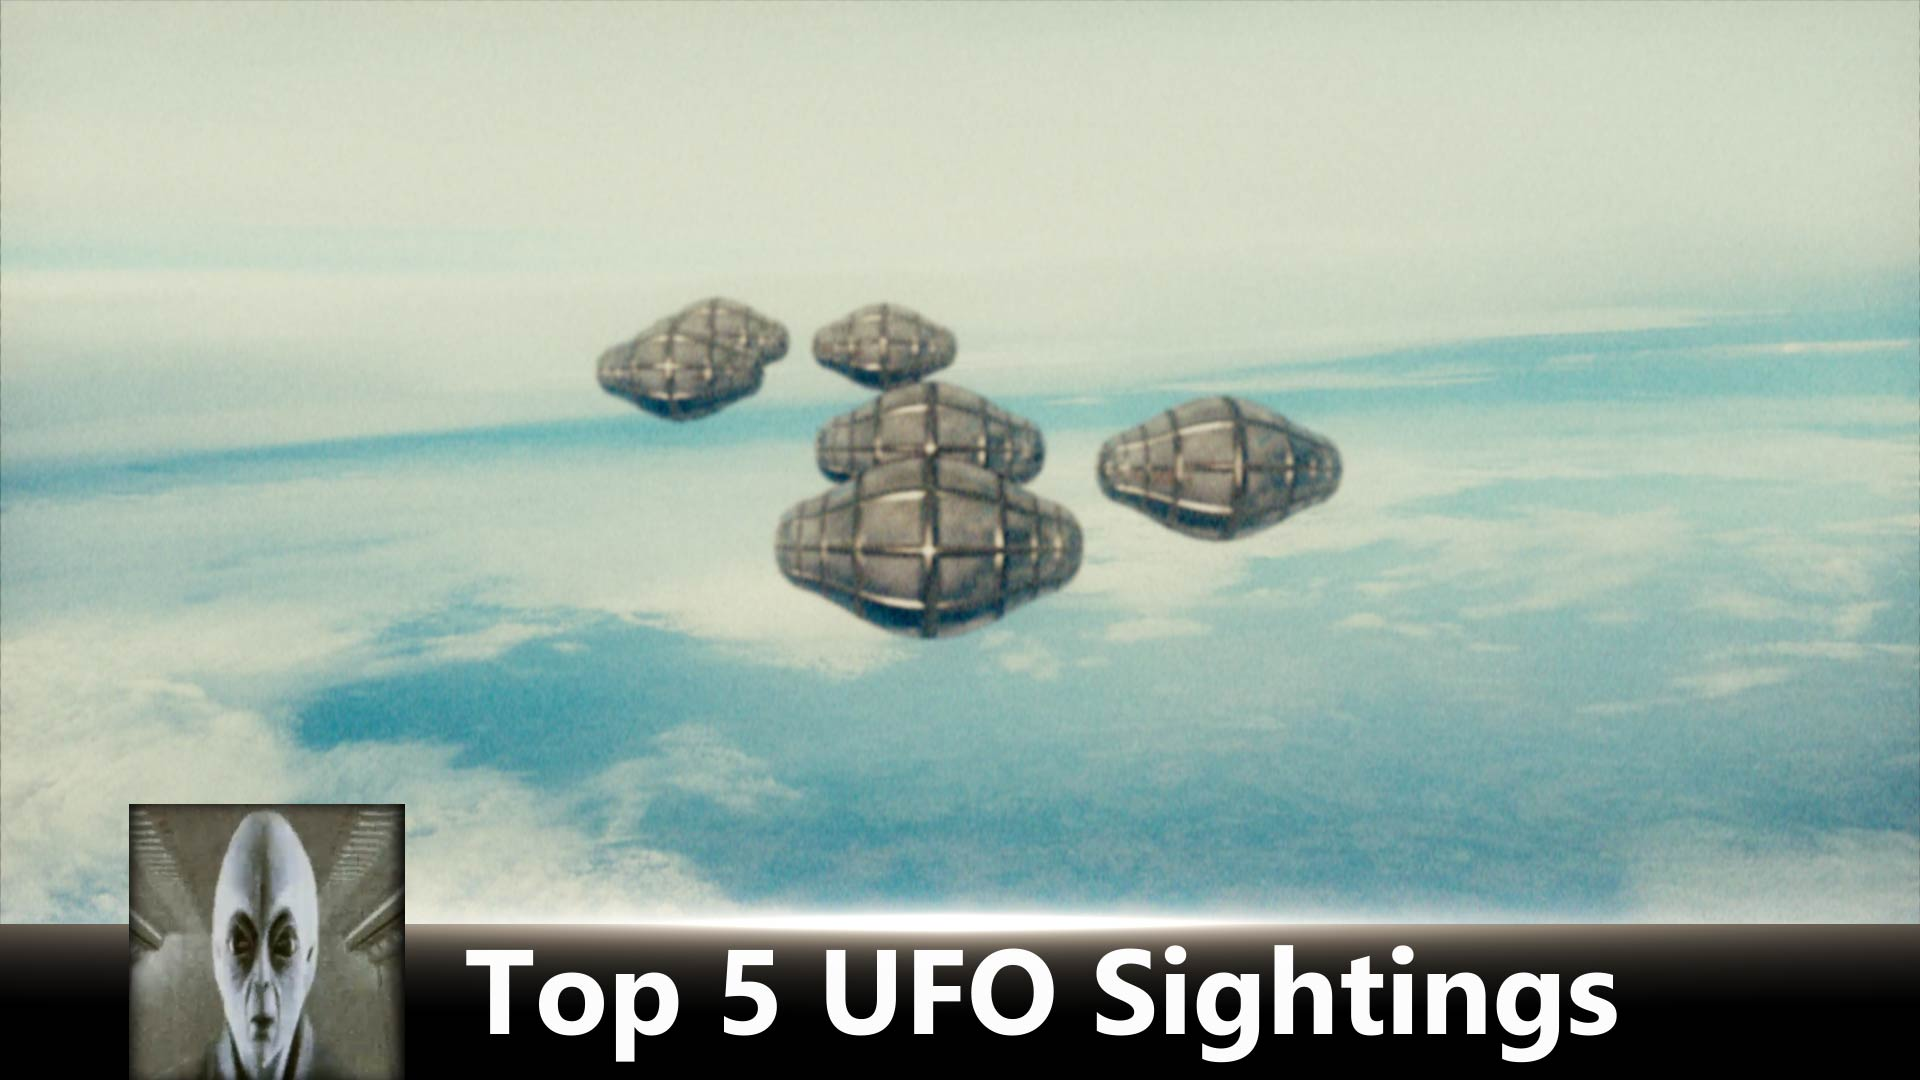 Top 5 UFO Sightings May 13th 2018